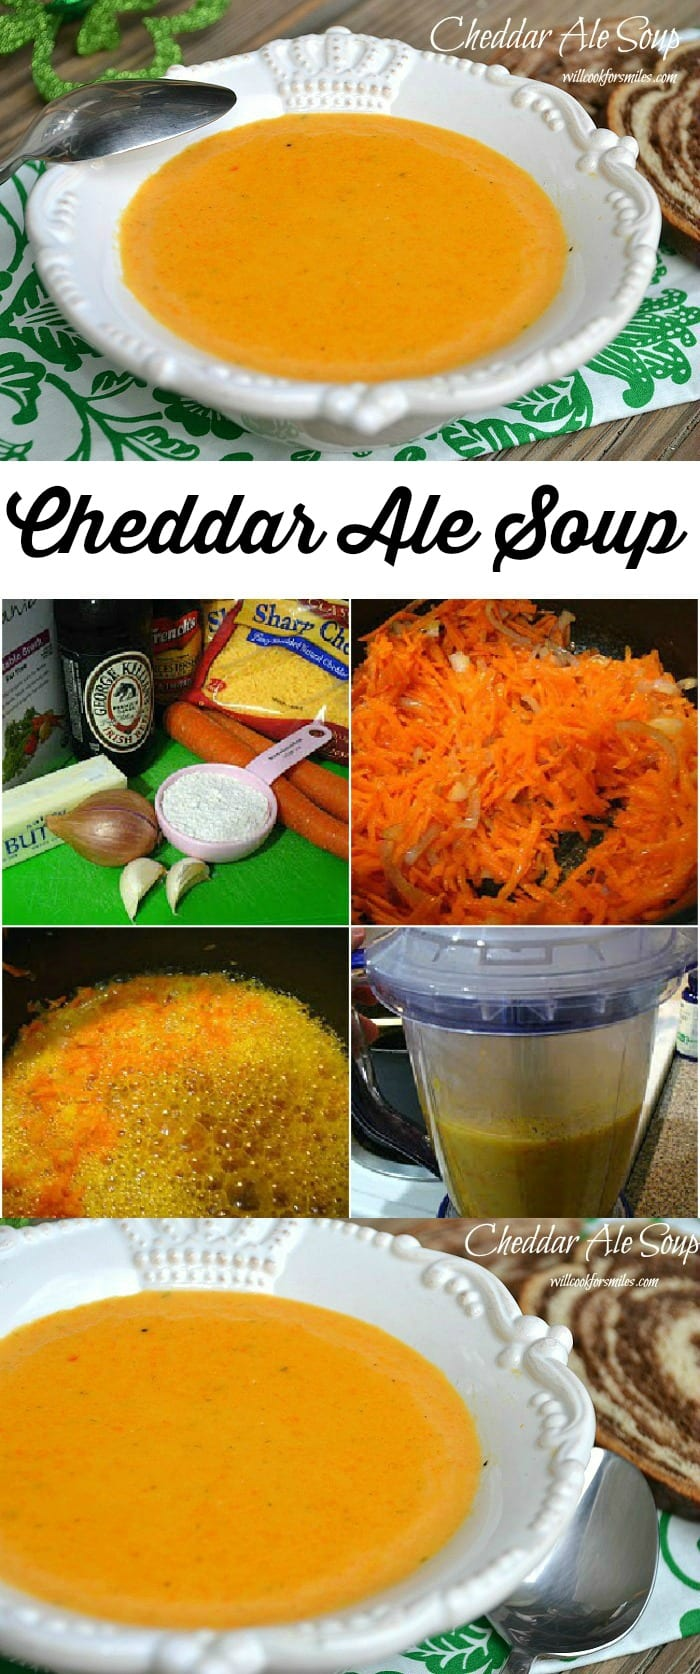 Cheddar Ale Soup from willcookforsmiles.com